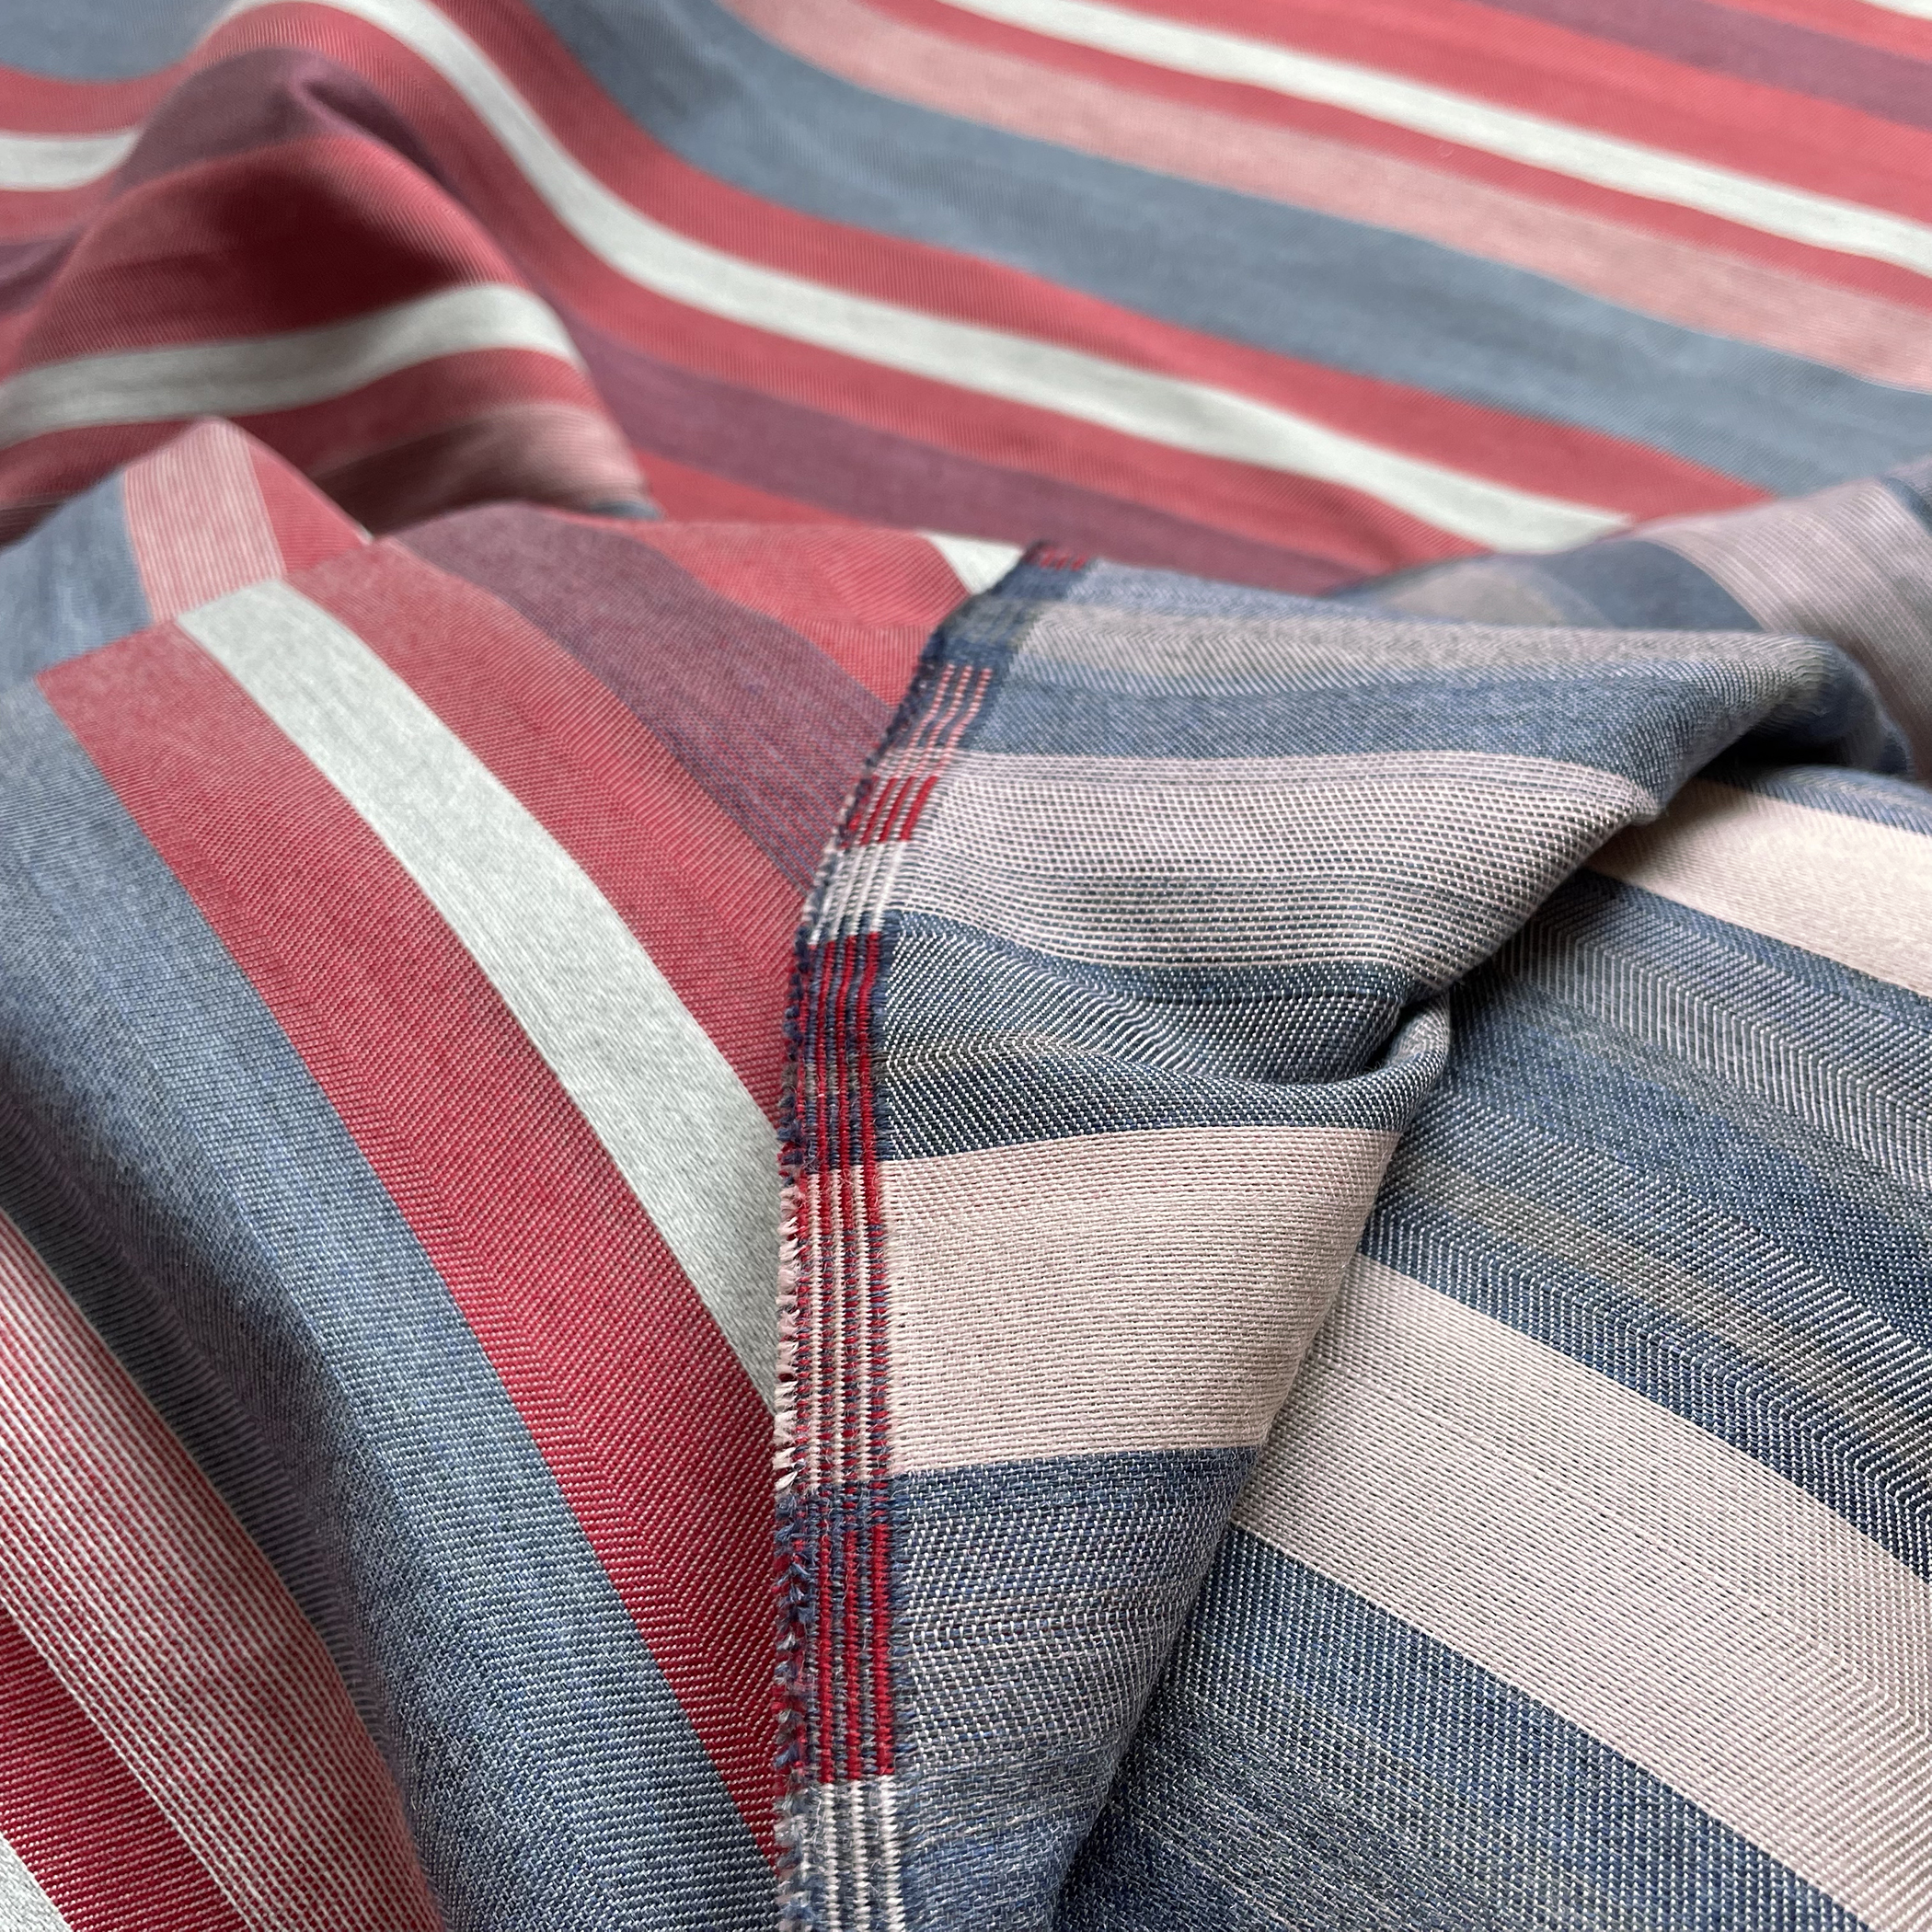 Alhambra Woven Fabric - Taking it's original inspiration from a late 18th century Ottoman woven silk.